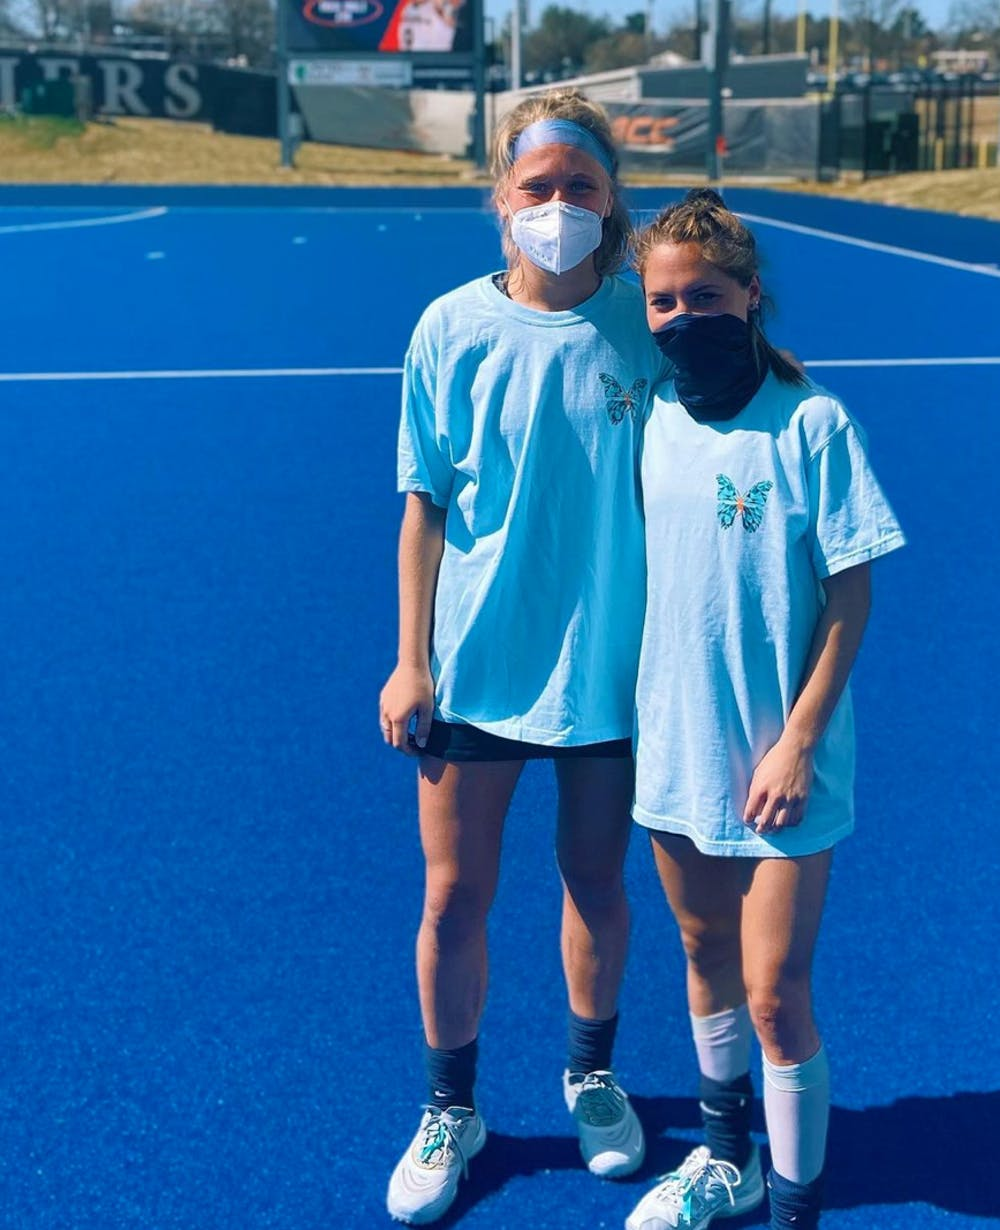 <p>Junior and senior field hockey players Adele Iacobucci and Greer Gill helped start the Virginia chapter of Morgan's Message this past March.&nbsp;</p>